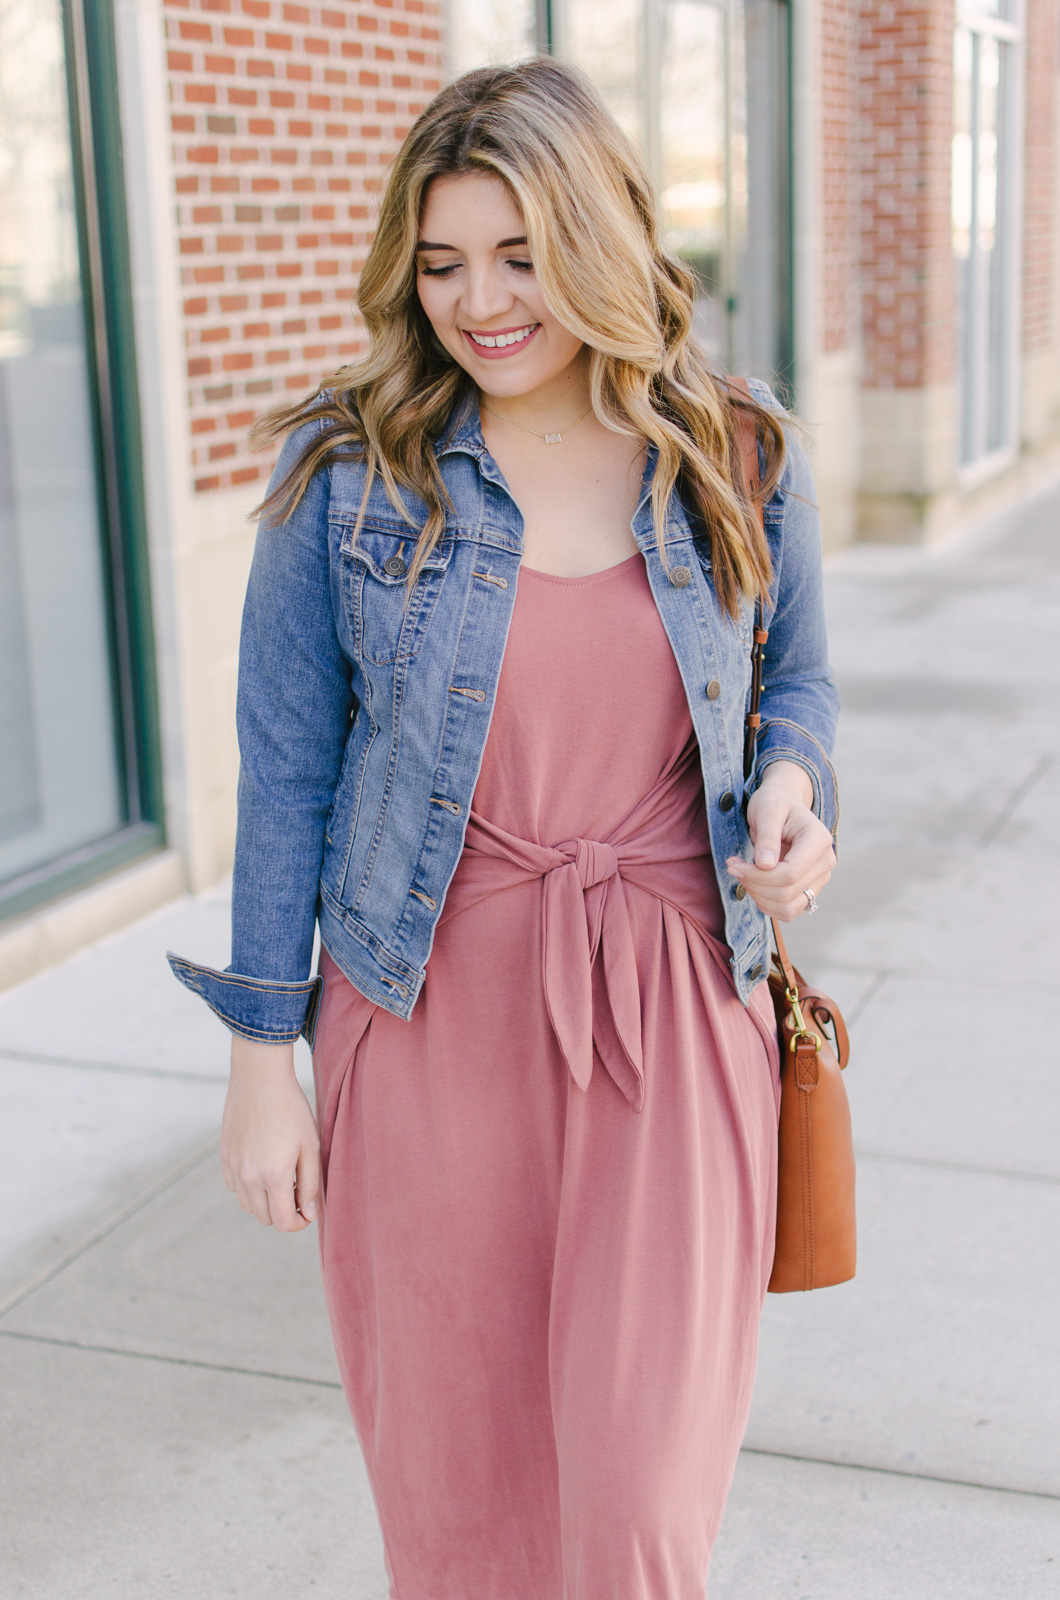 knotted midi dress outfit for spring - I'm obsessed with this adorable knotted dress! | Get outfit details for this spring midi dress outfit or see more cute spring outfit ideas at bylaurenm.com!